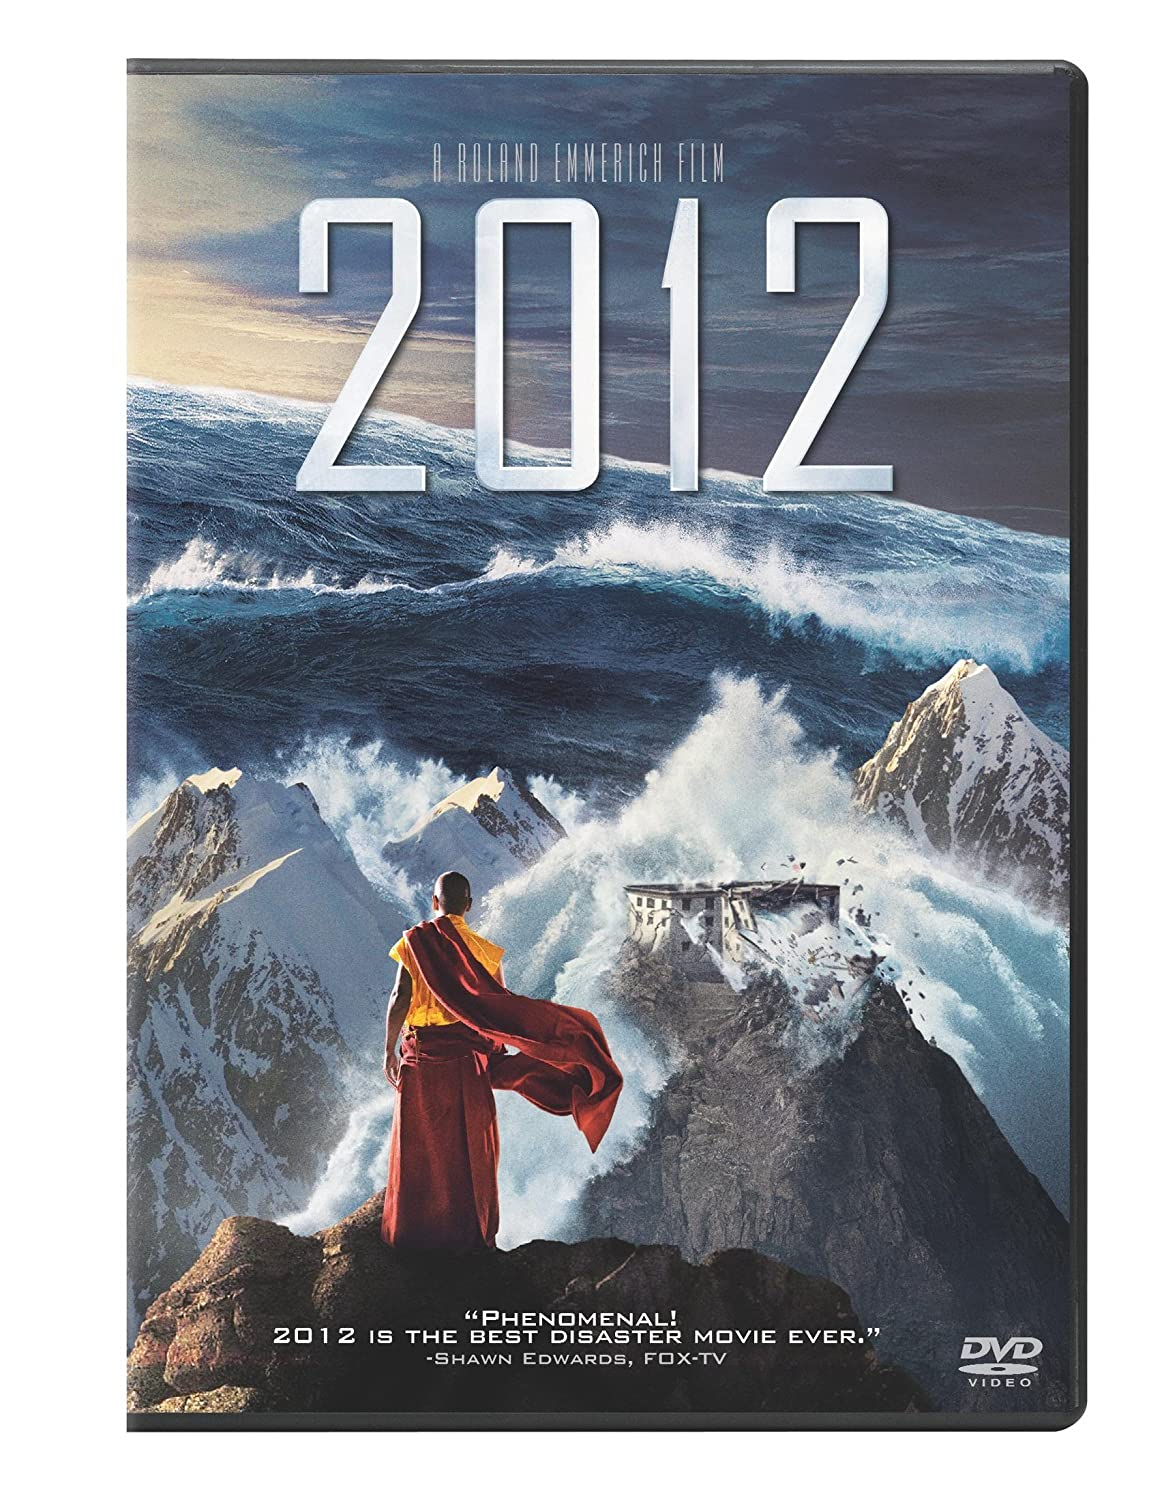 2012 end of the world movie free download